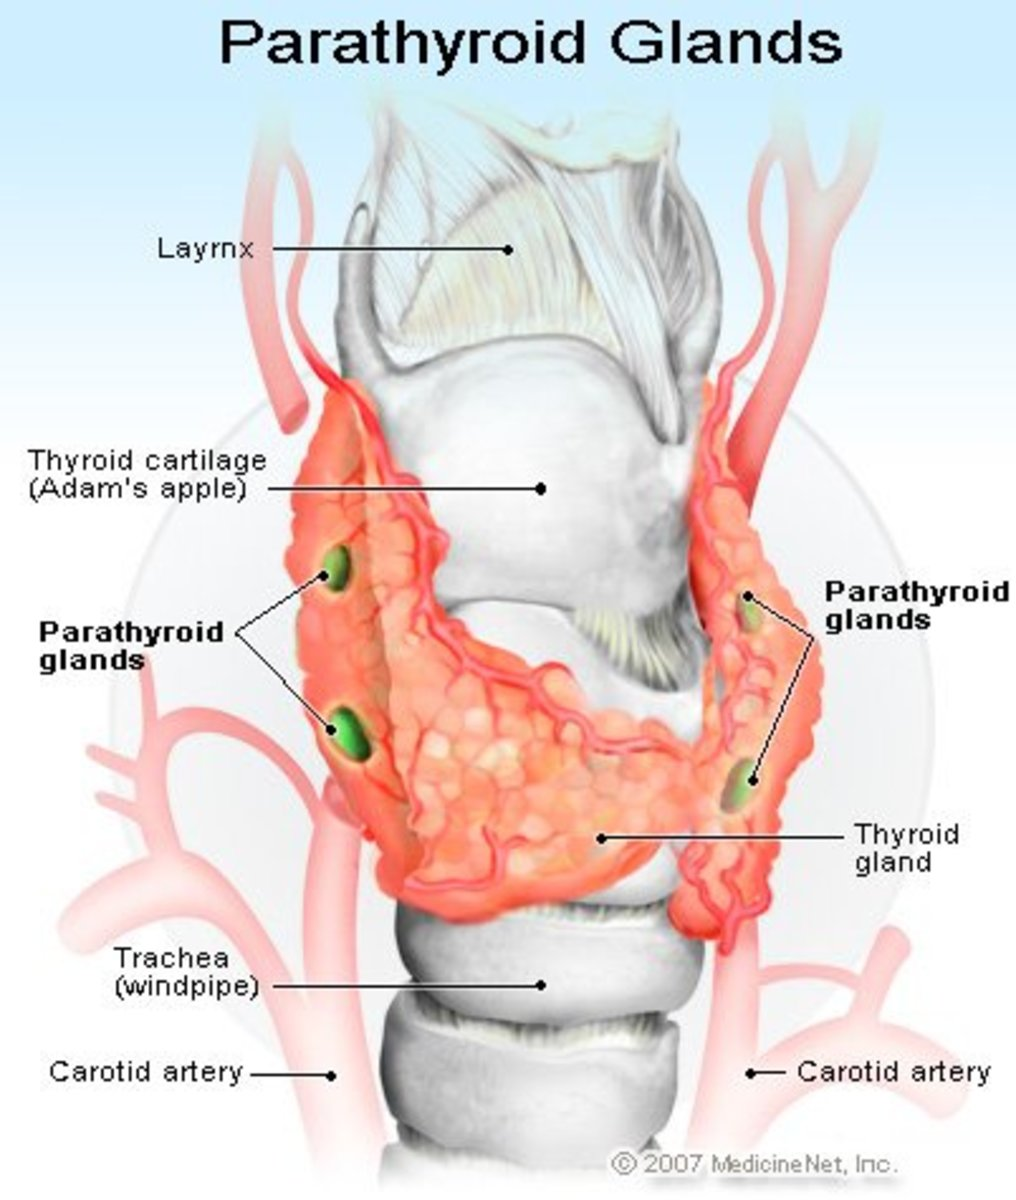 Clinical Manifestations Of Primary Hyperparathyroidism As a Major Disorder Of Parathyroid Glands